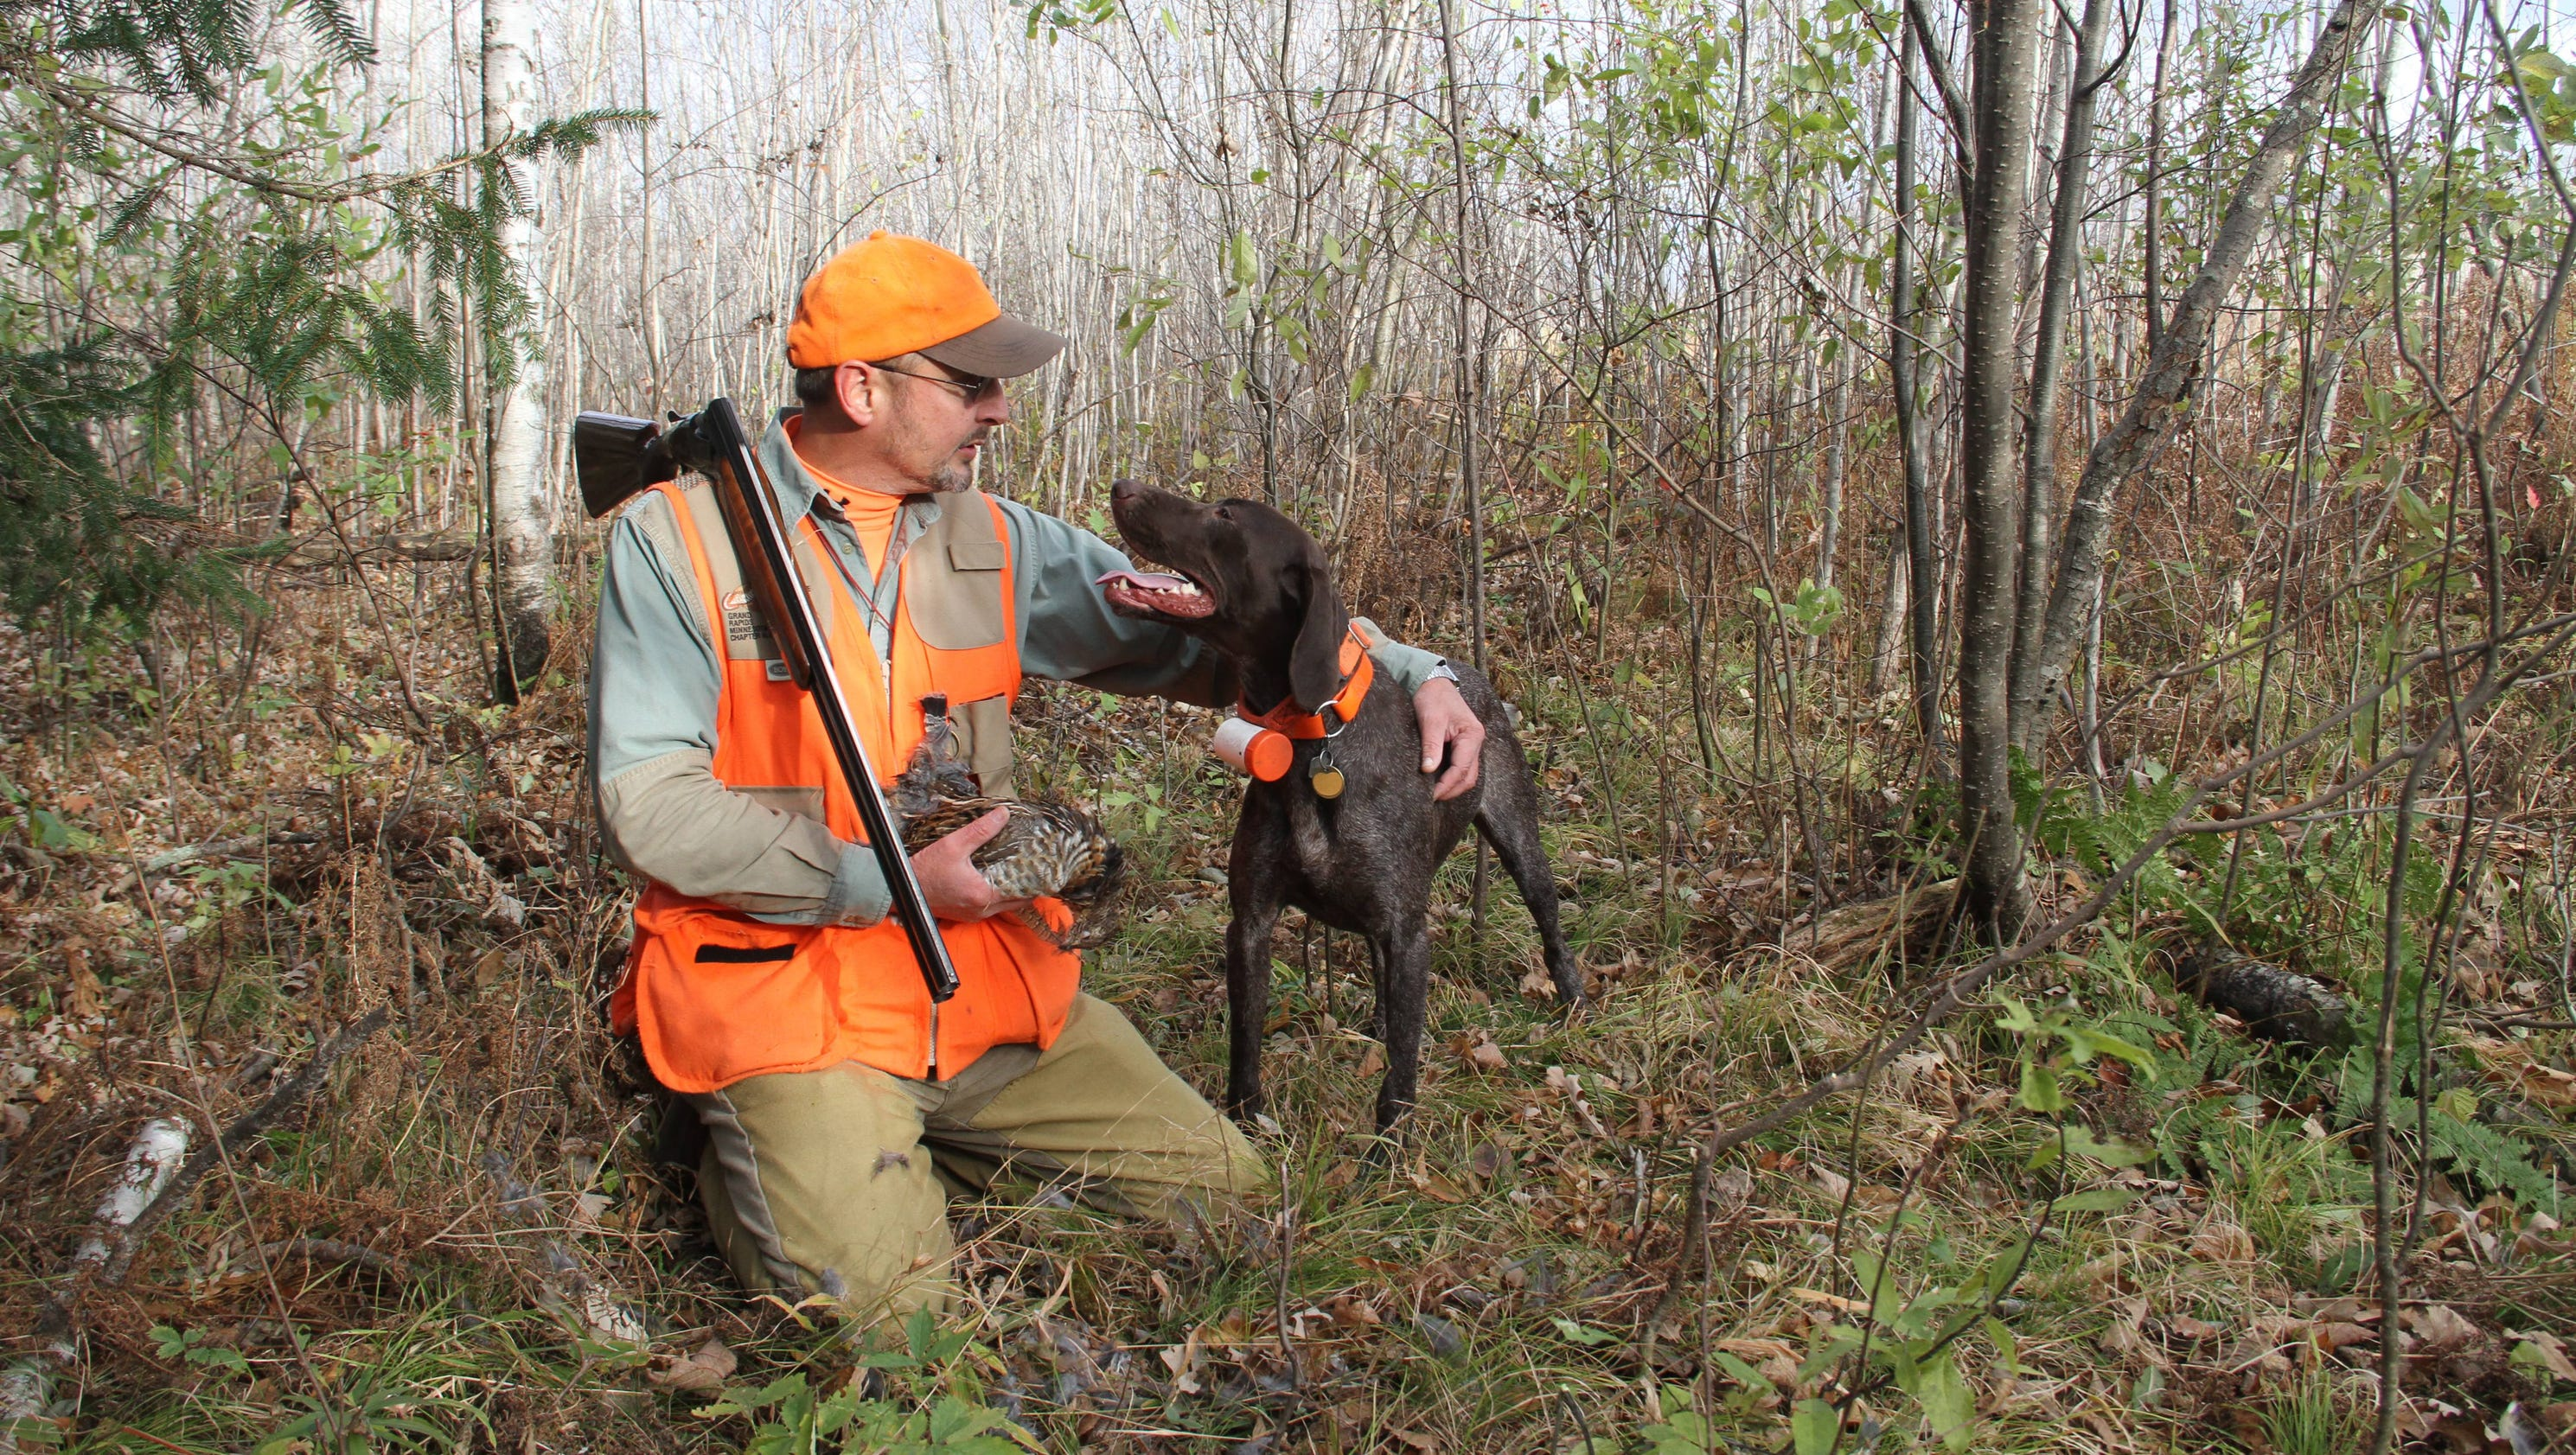 Smith Amid Changes Ruffed Grouse Society Retains Strong